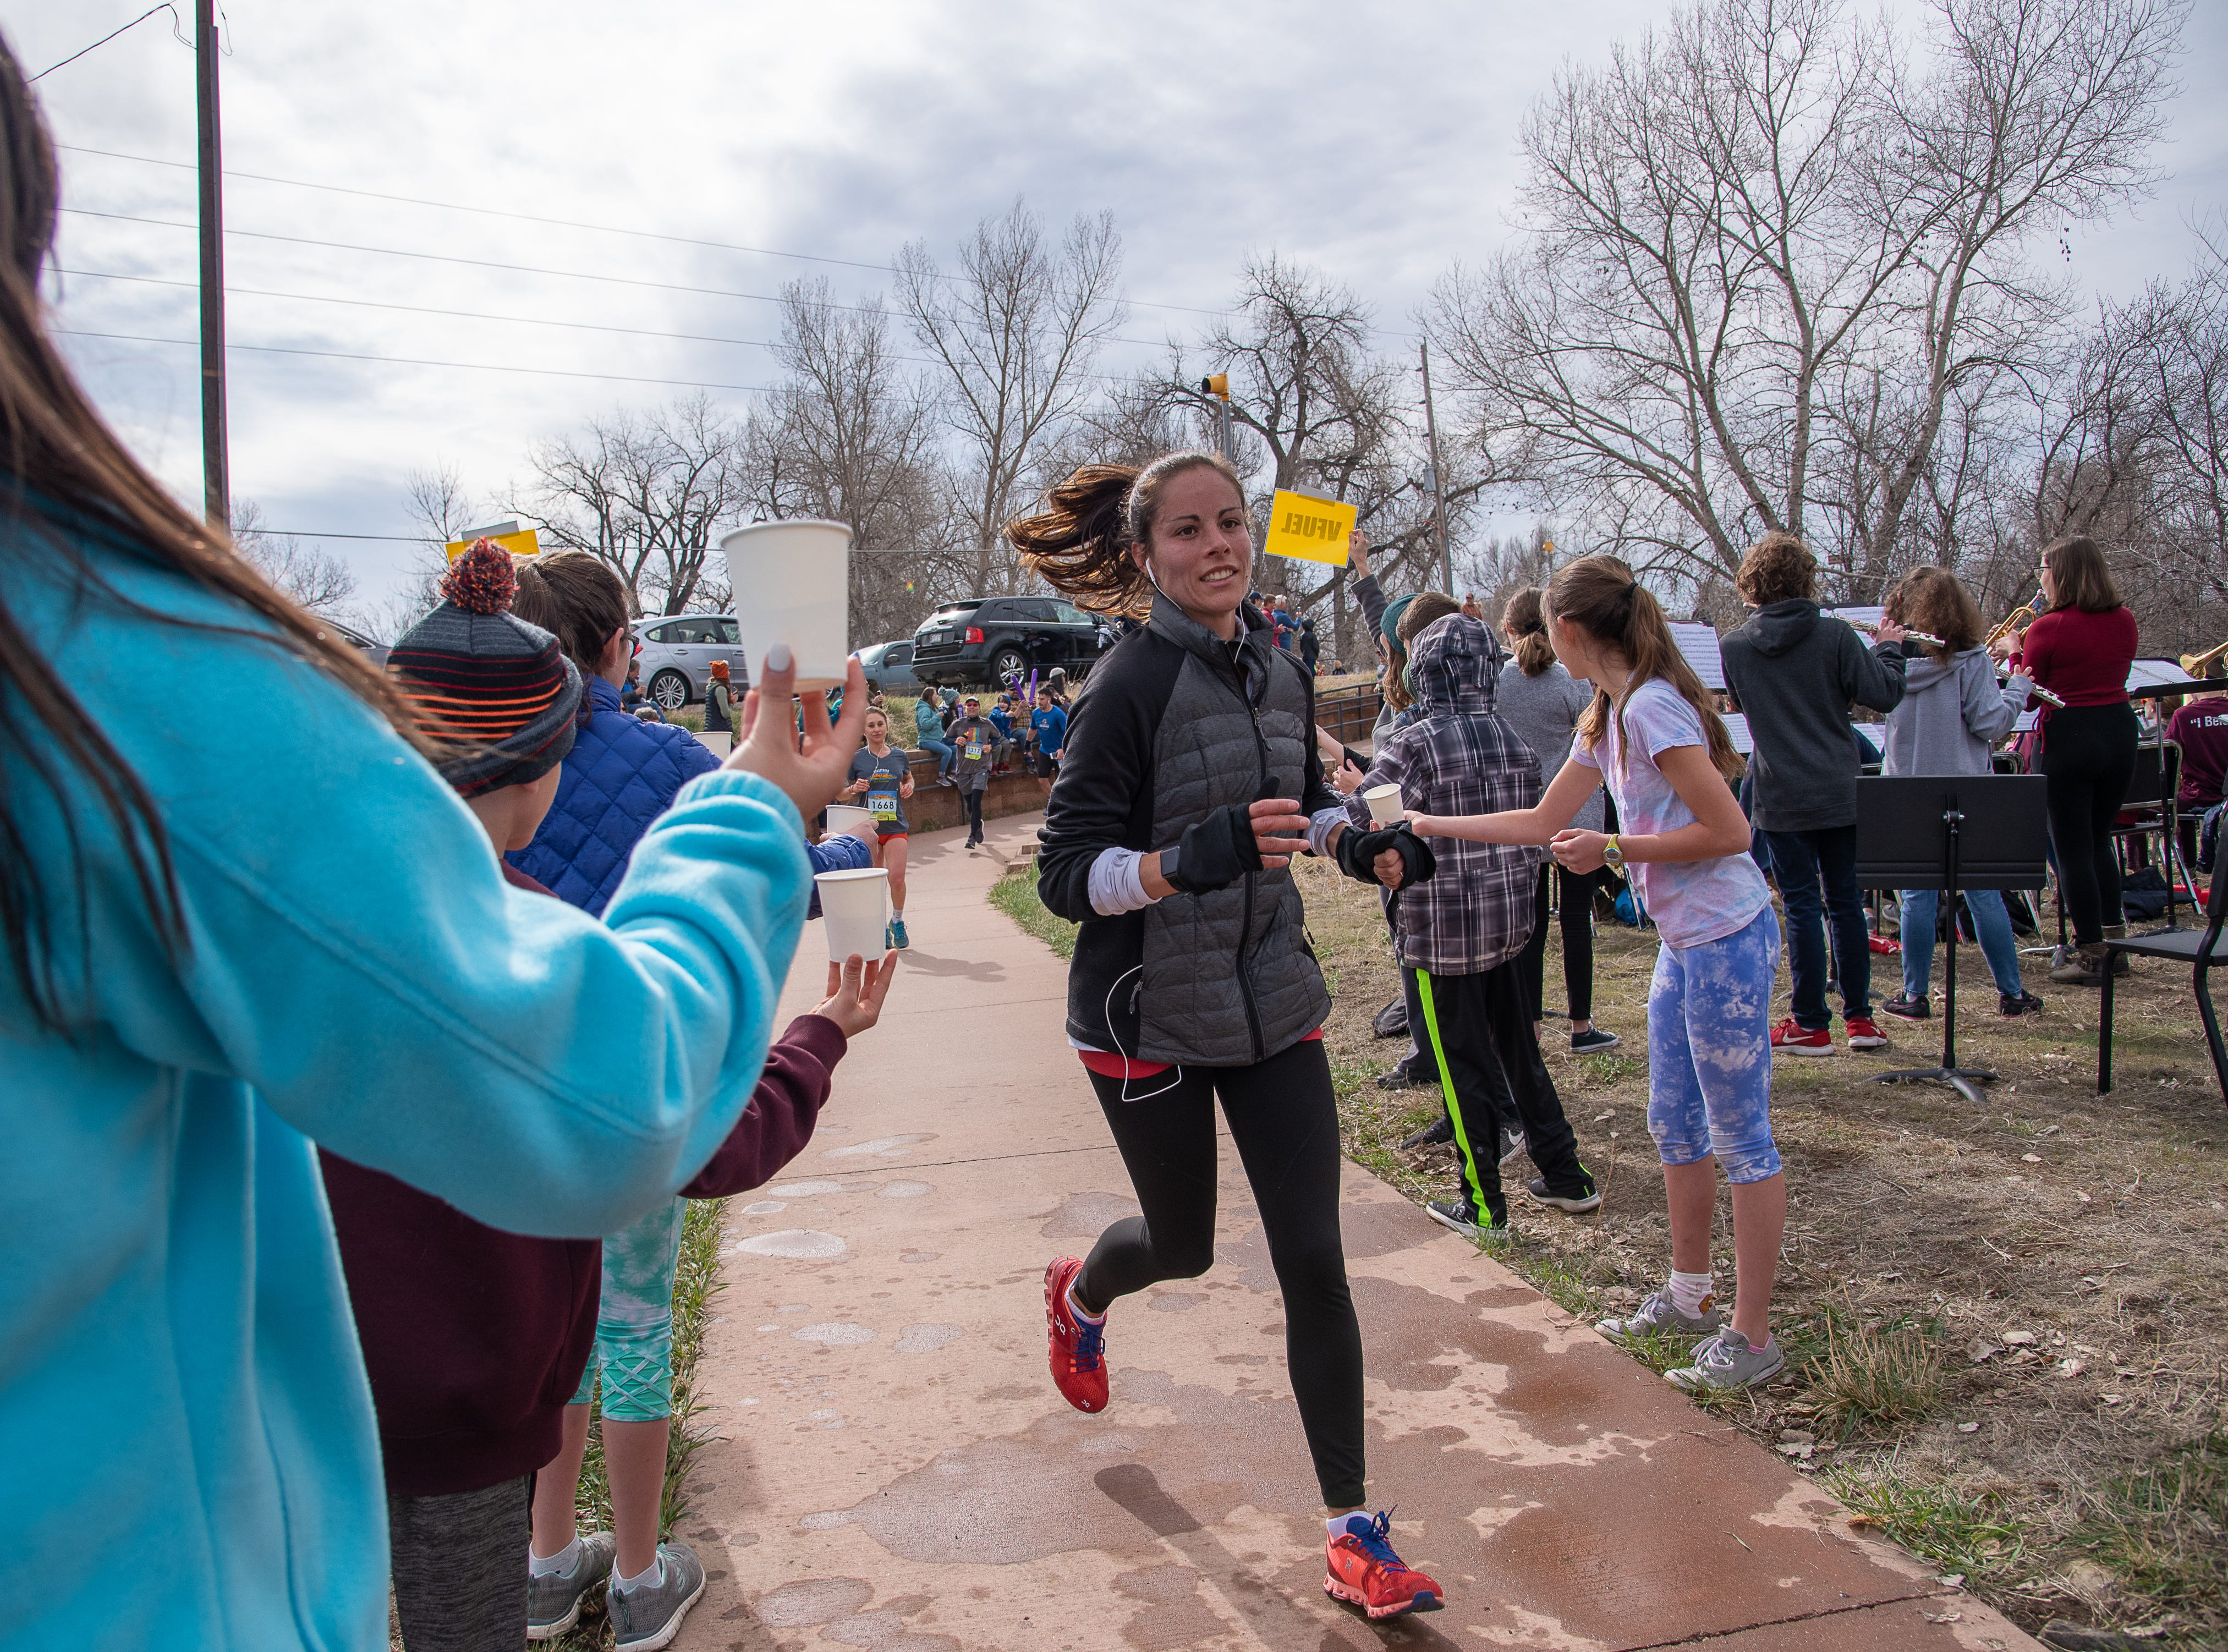 Participants enter Lyons Park during the Horsetooth Half Marathon on Sunday, April 14, 2019, in Fort Collins, Colo.